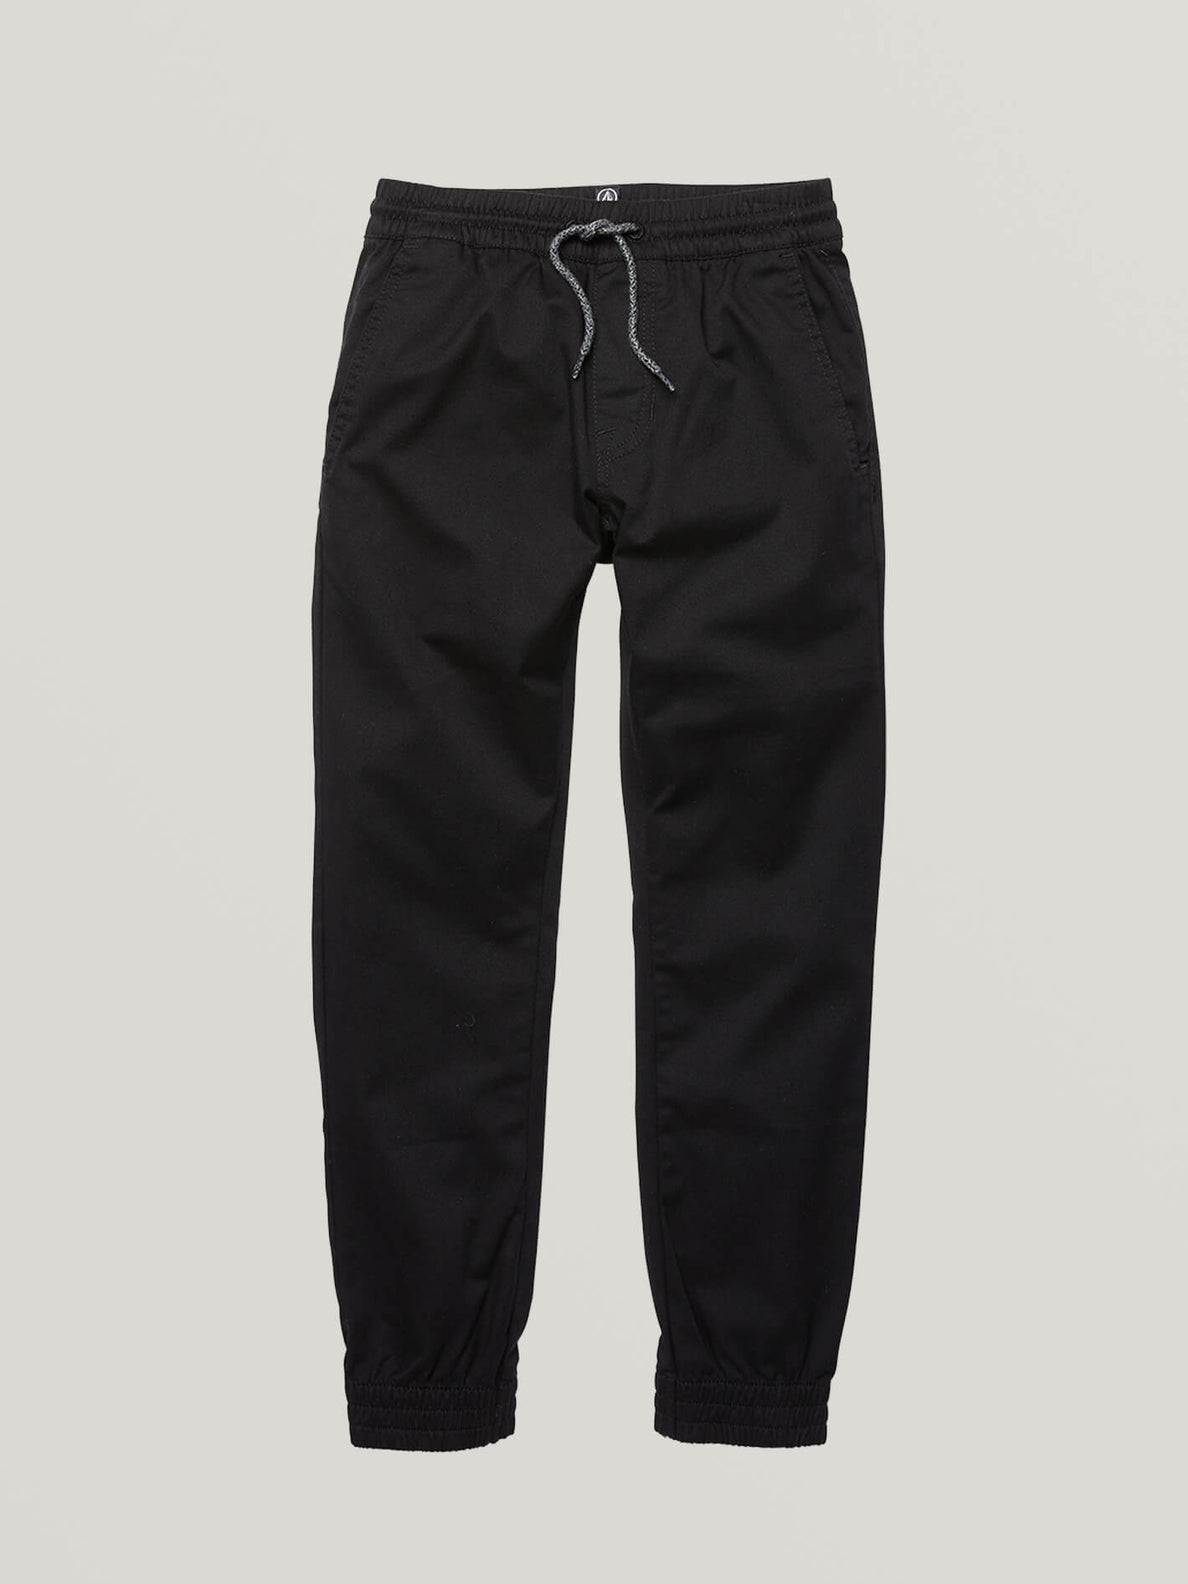 Big Boys Frickin Slim Jogger Pants In Black, Front View